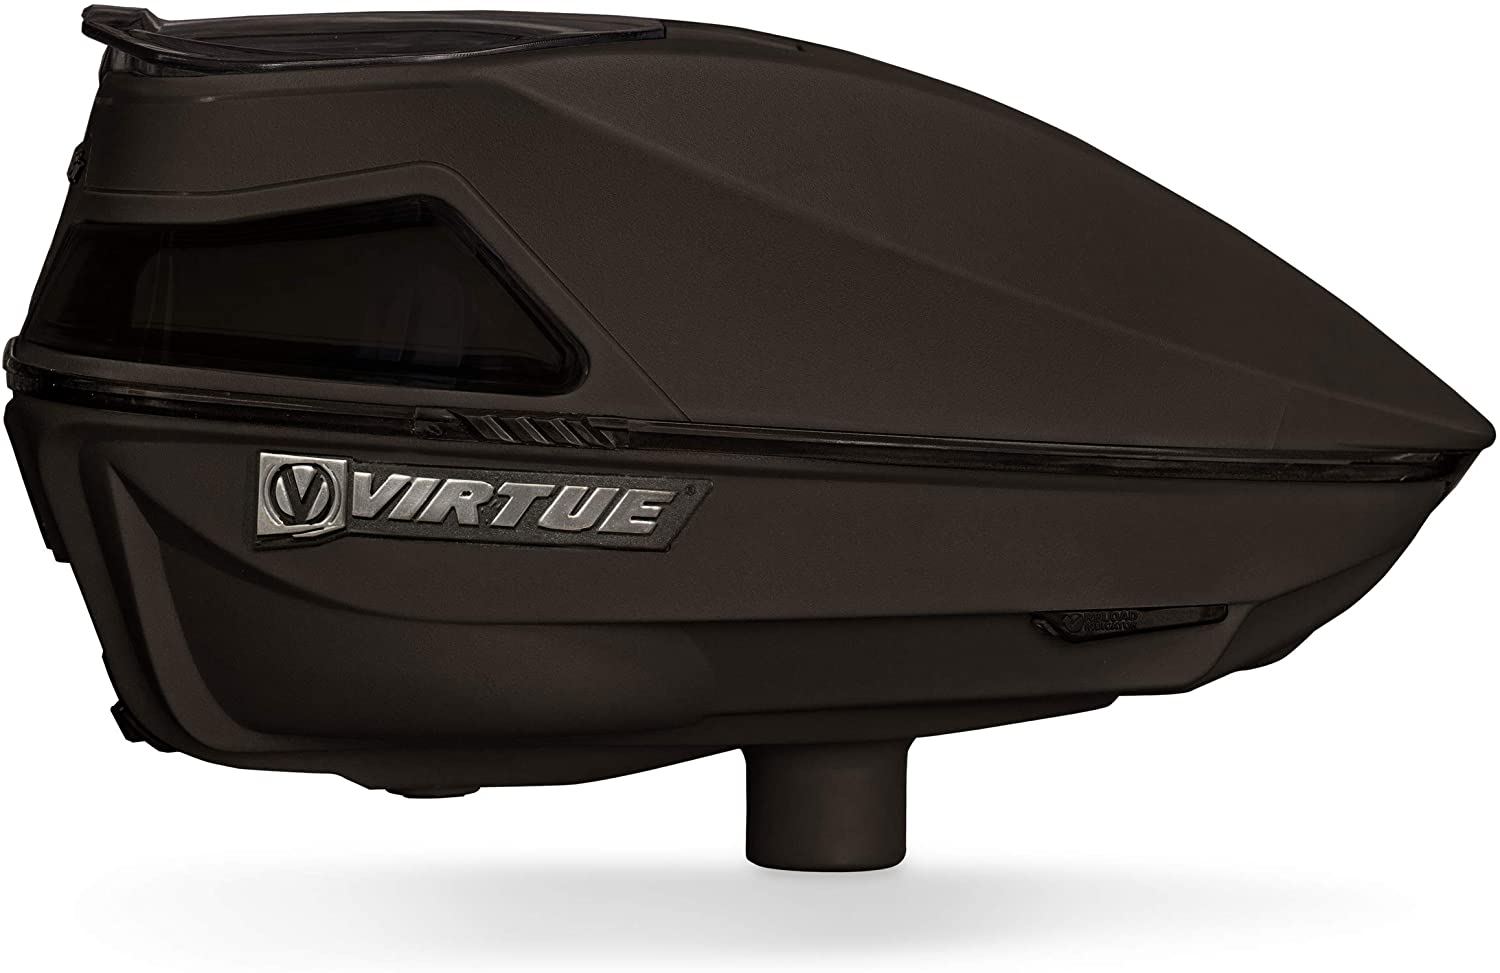 Virtue Spire IV Electronic Paintball Loaders